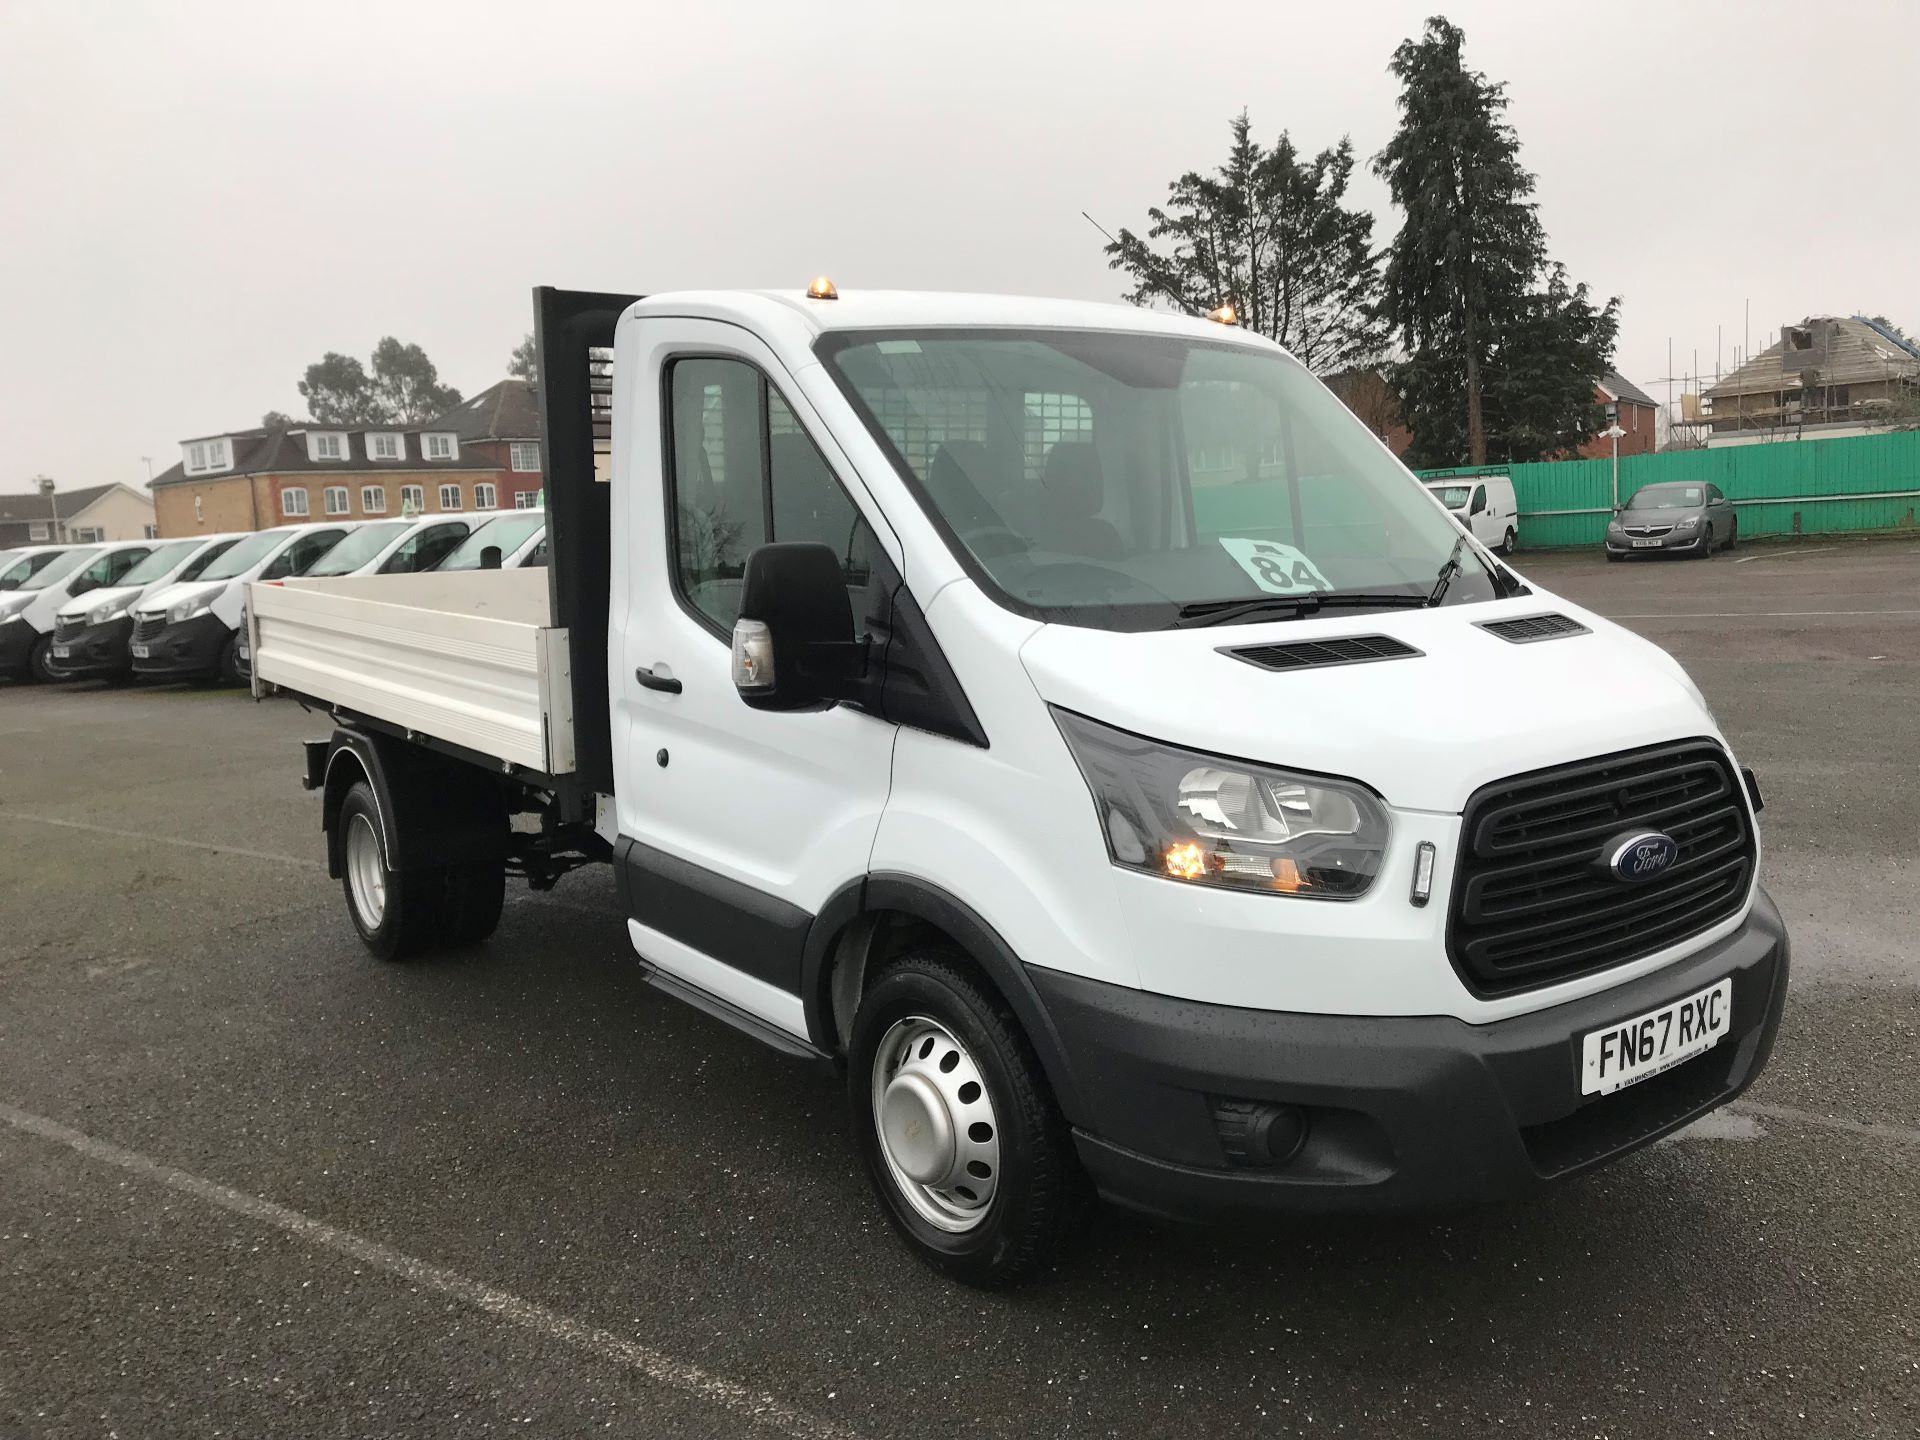 2017 Ford Transit  350 2.0 TDCI 130PS S/CAB  TIPPER EURO 6 (FN67RXC)